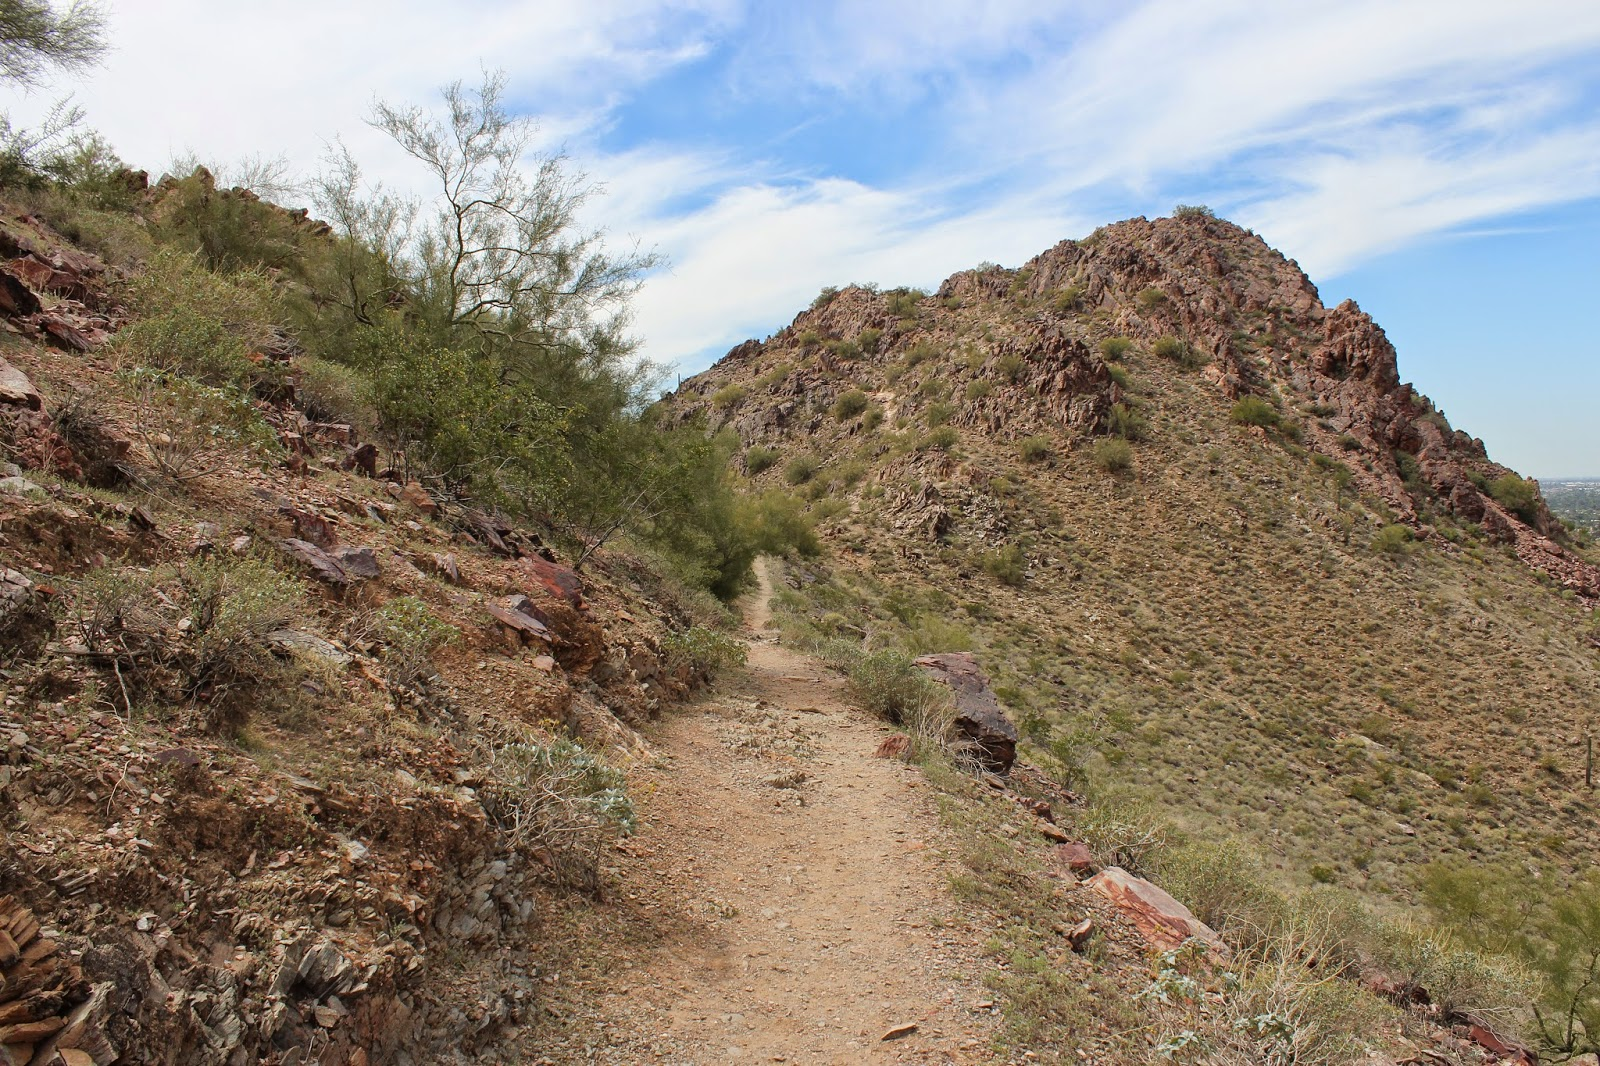 Gjhikes mohave trail of the phoenix mountain preserve but the park has been expanded in more recent times following the branch of the trail to the right will lead to more sciox Choice Image